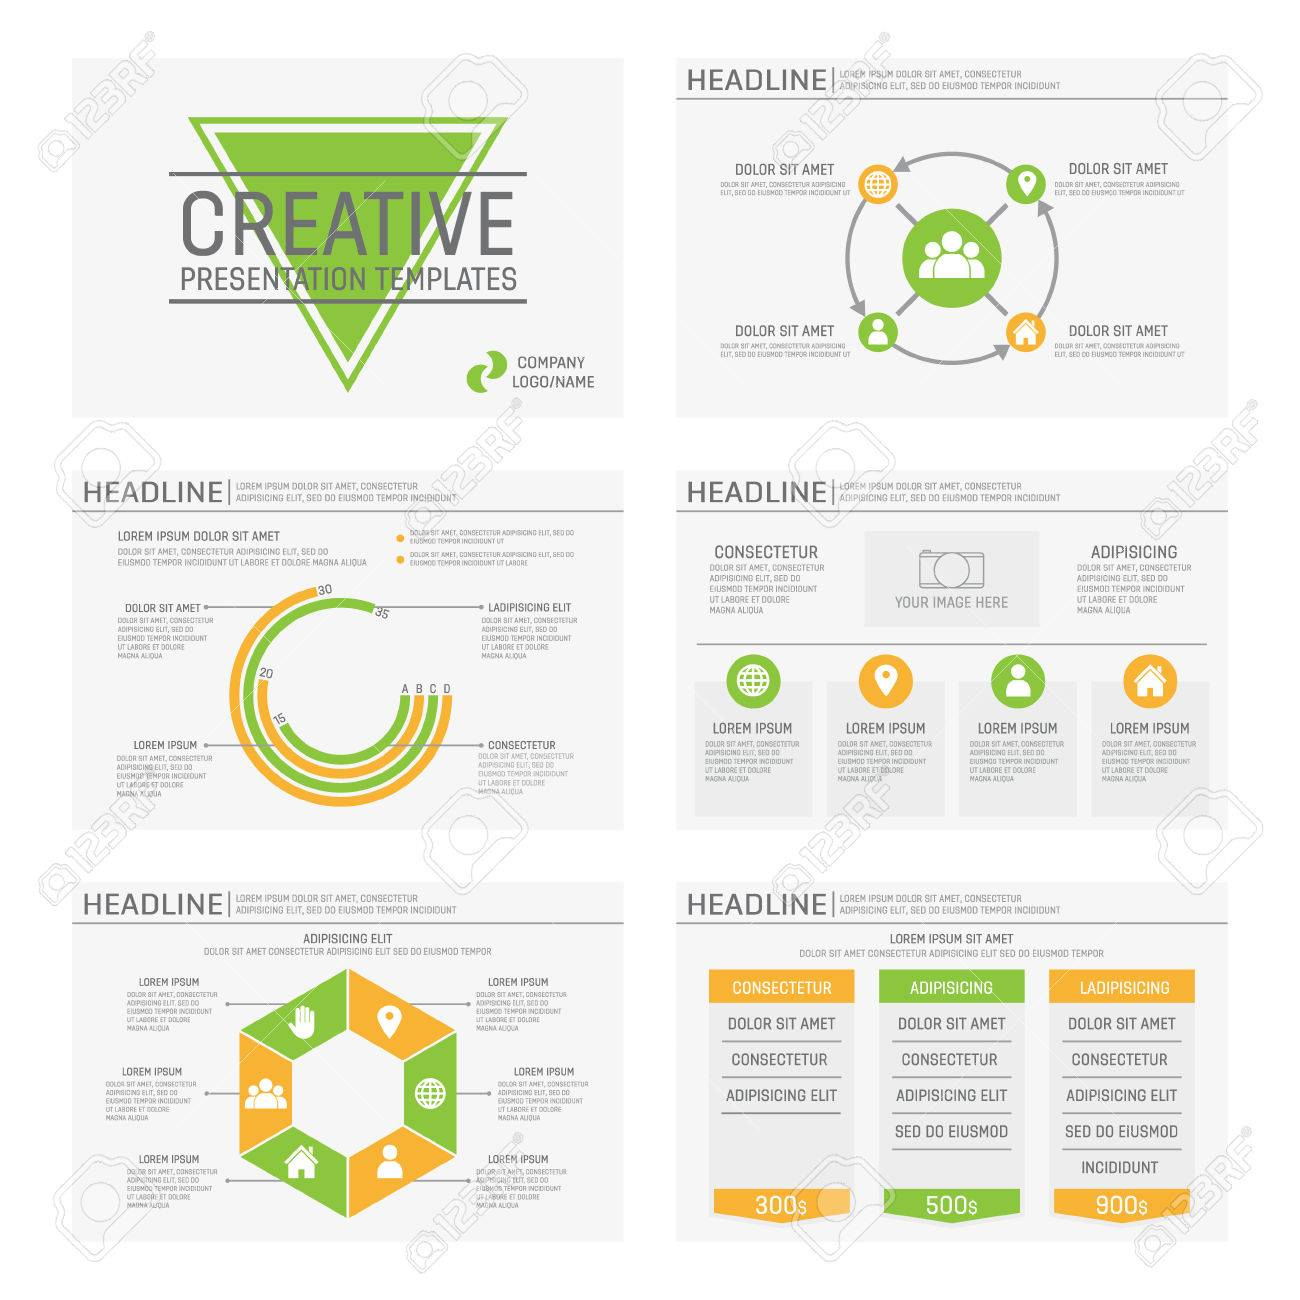 Vector template for presentation slides with graphs and charts - 48035196